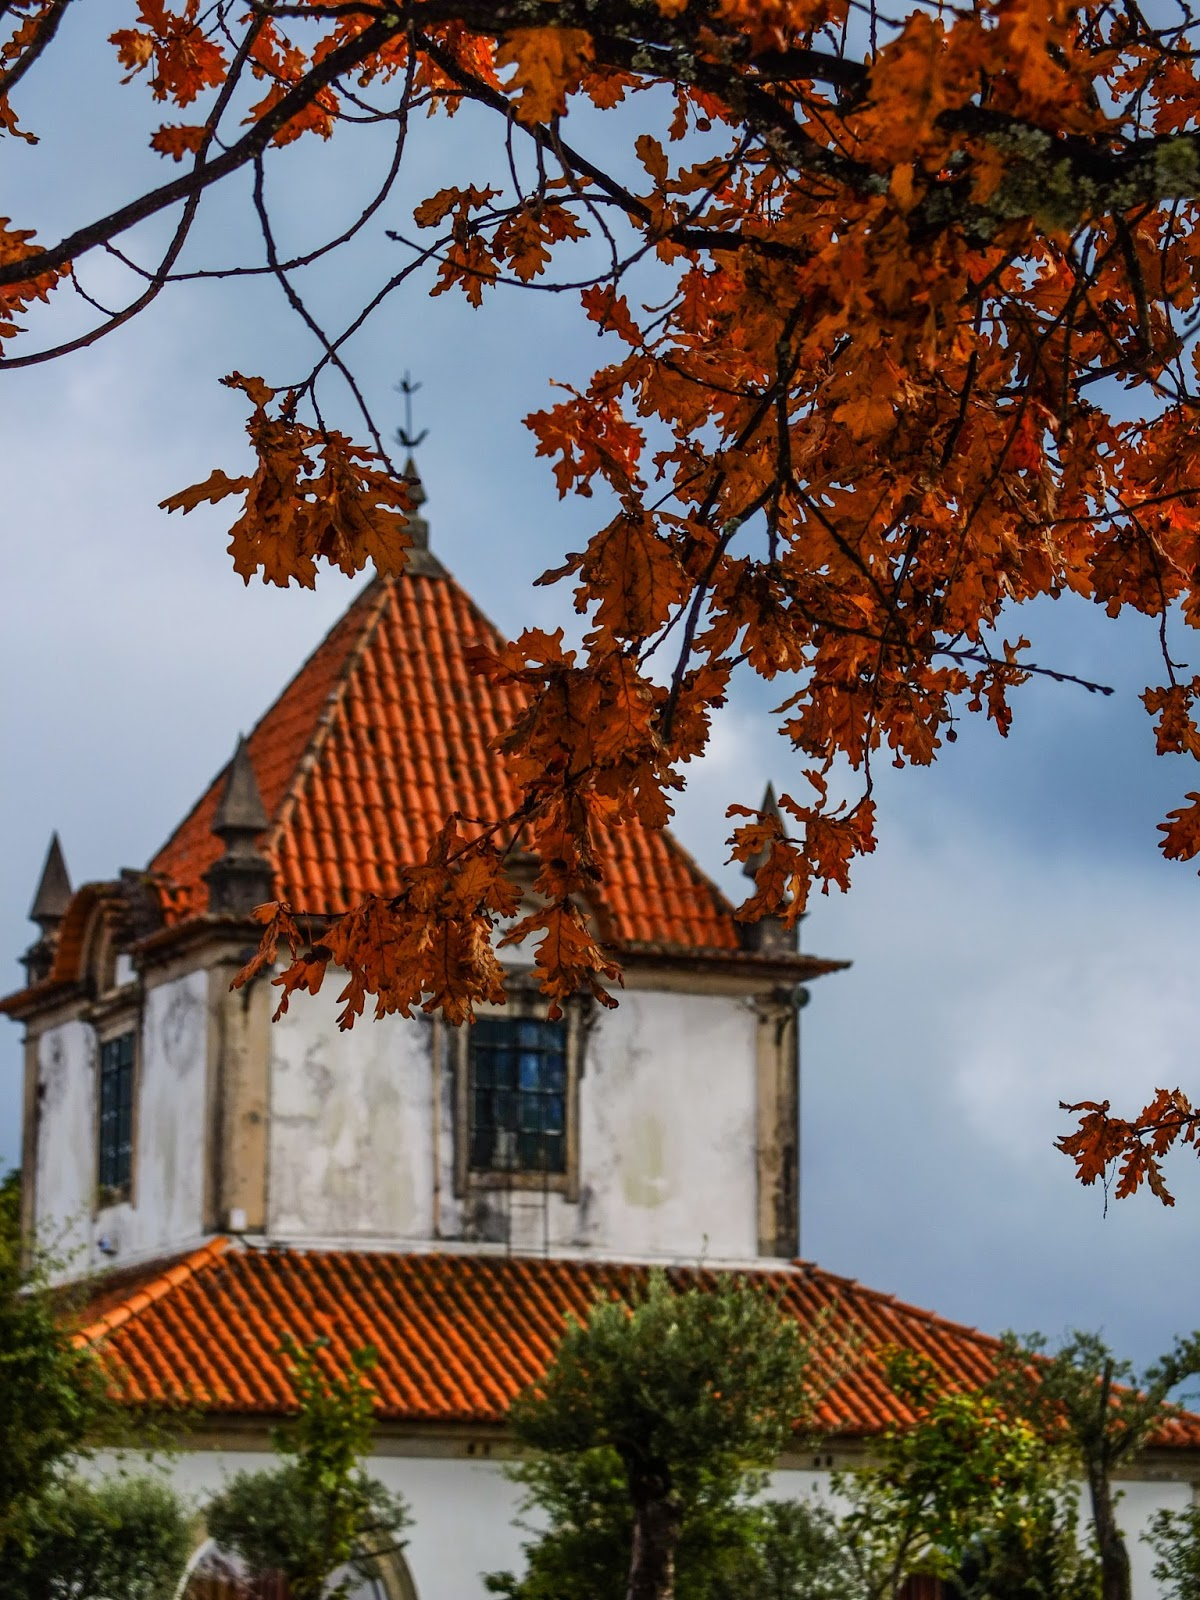 Beautiful building with a terracotta roof pictured under an oak tree in the Sameiro Sanctuary.